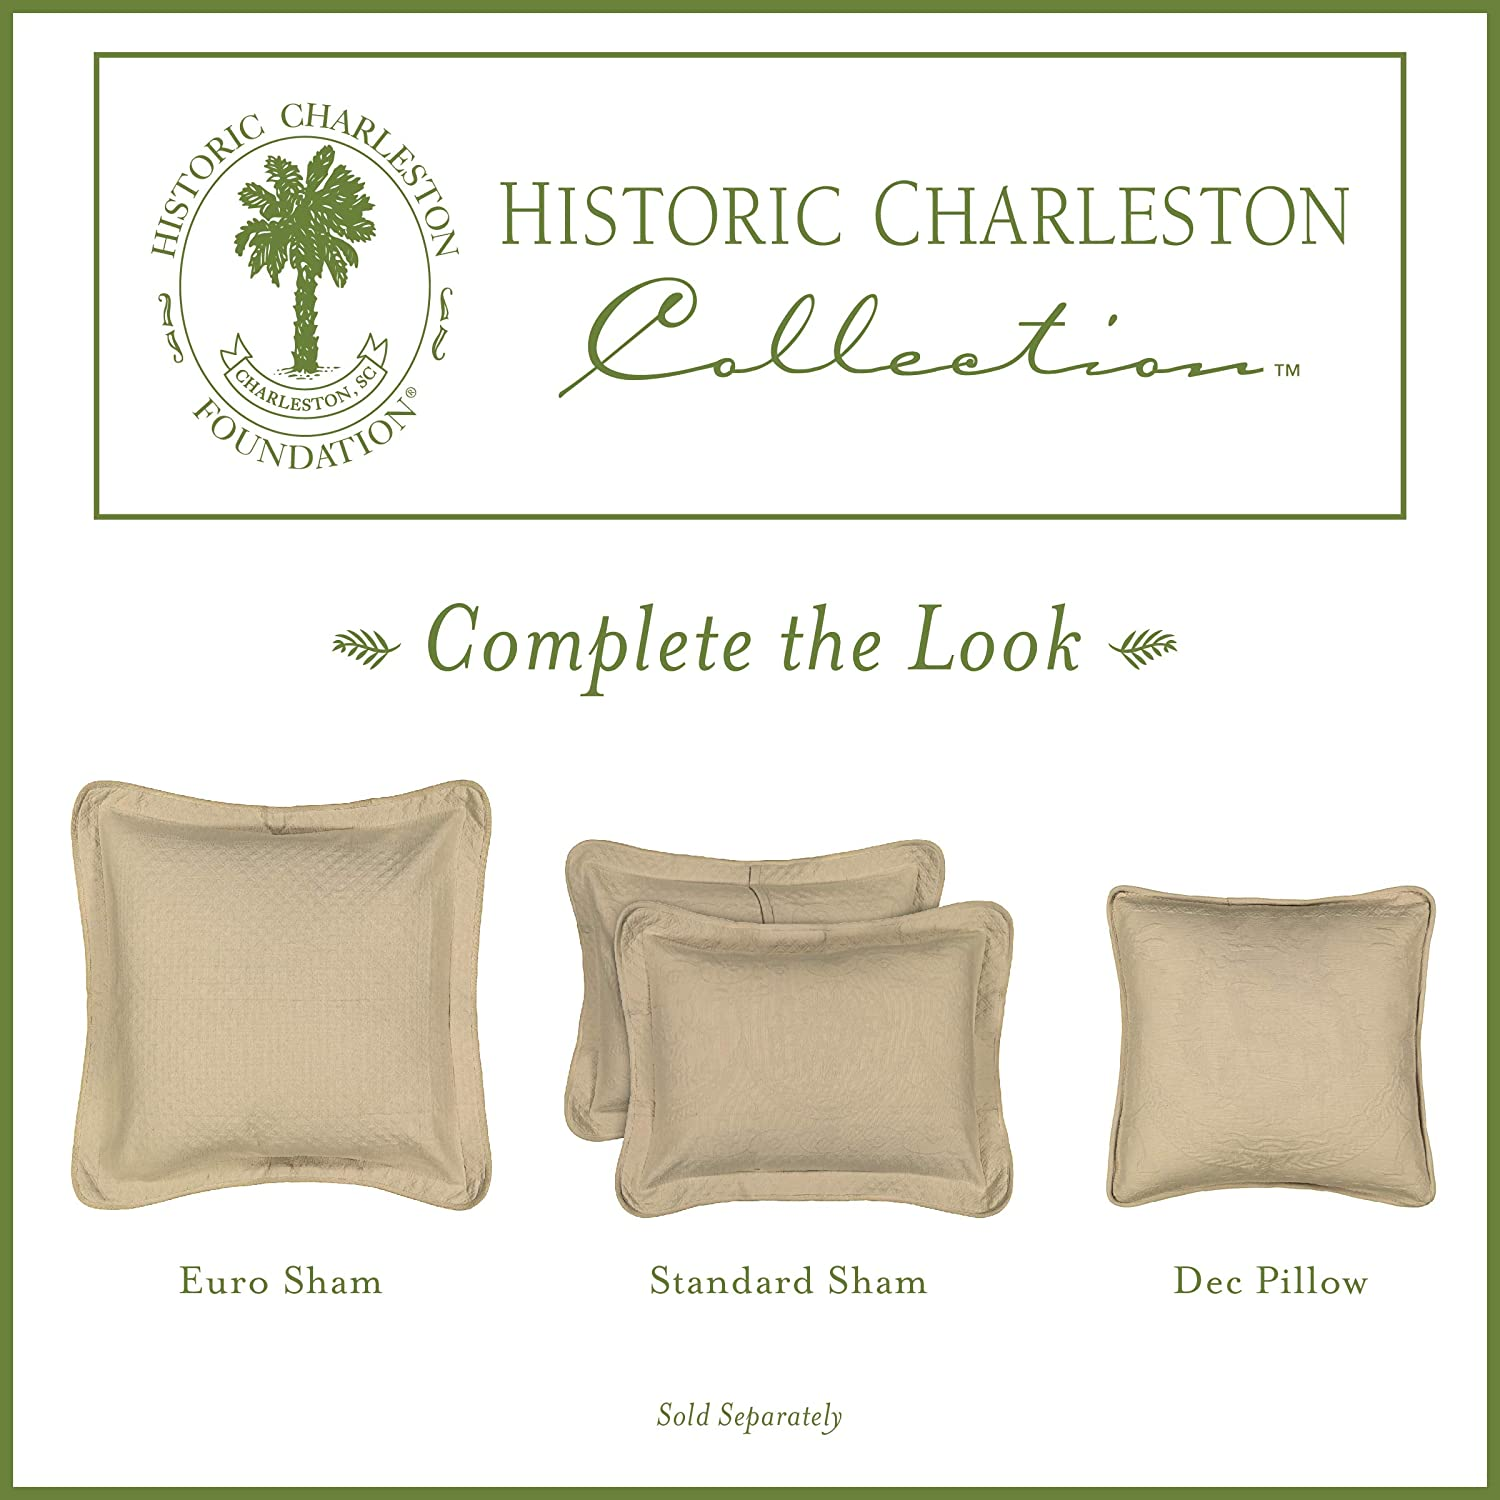 Historic Charleston 13995020X020WHI King Charles Matelasse 20-Inch by 20-Inch Decorative Pillow White Ellery Homestyles